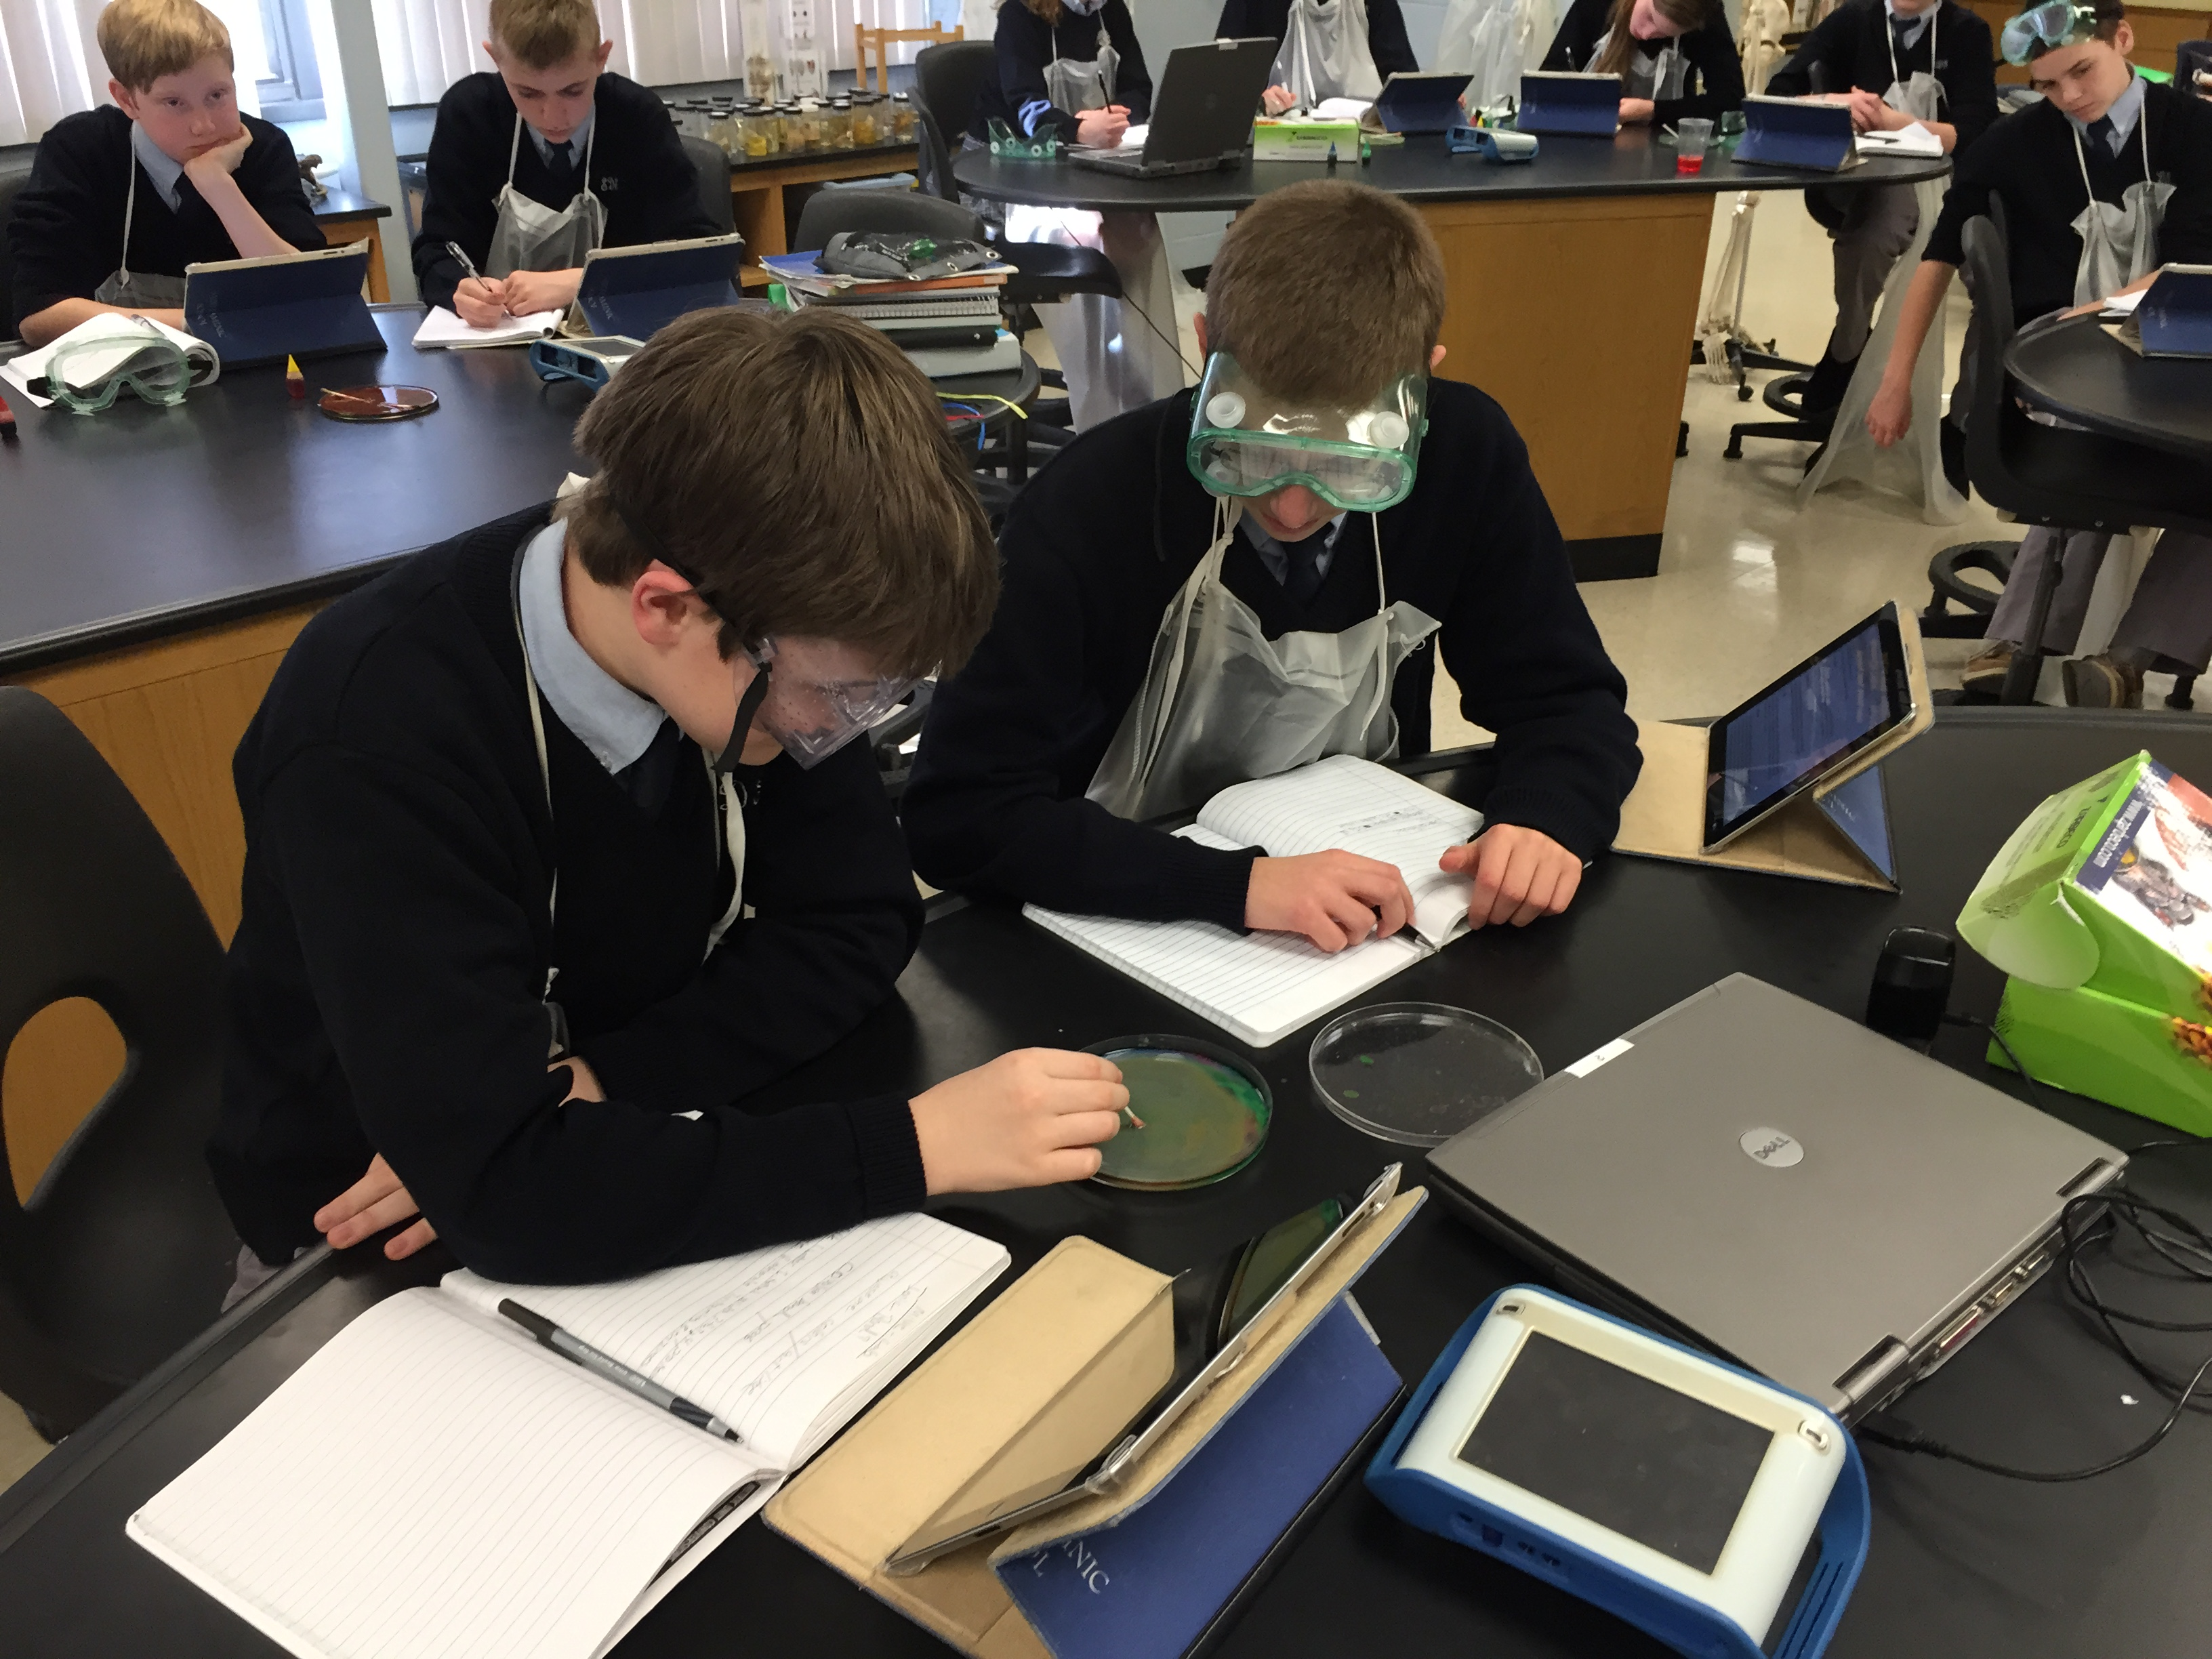 Students in Joanne Arnold's science class at. St. Dominic School in Brick work on a project on chemical bonding. (Photo: Daniel Nee)